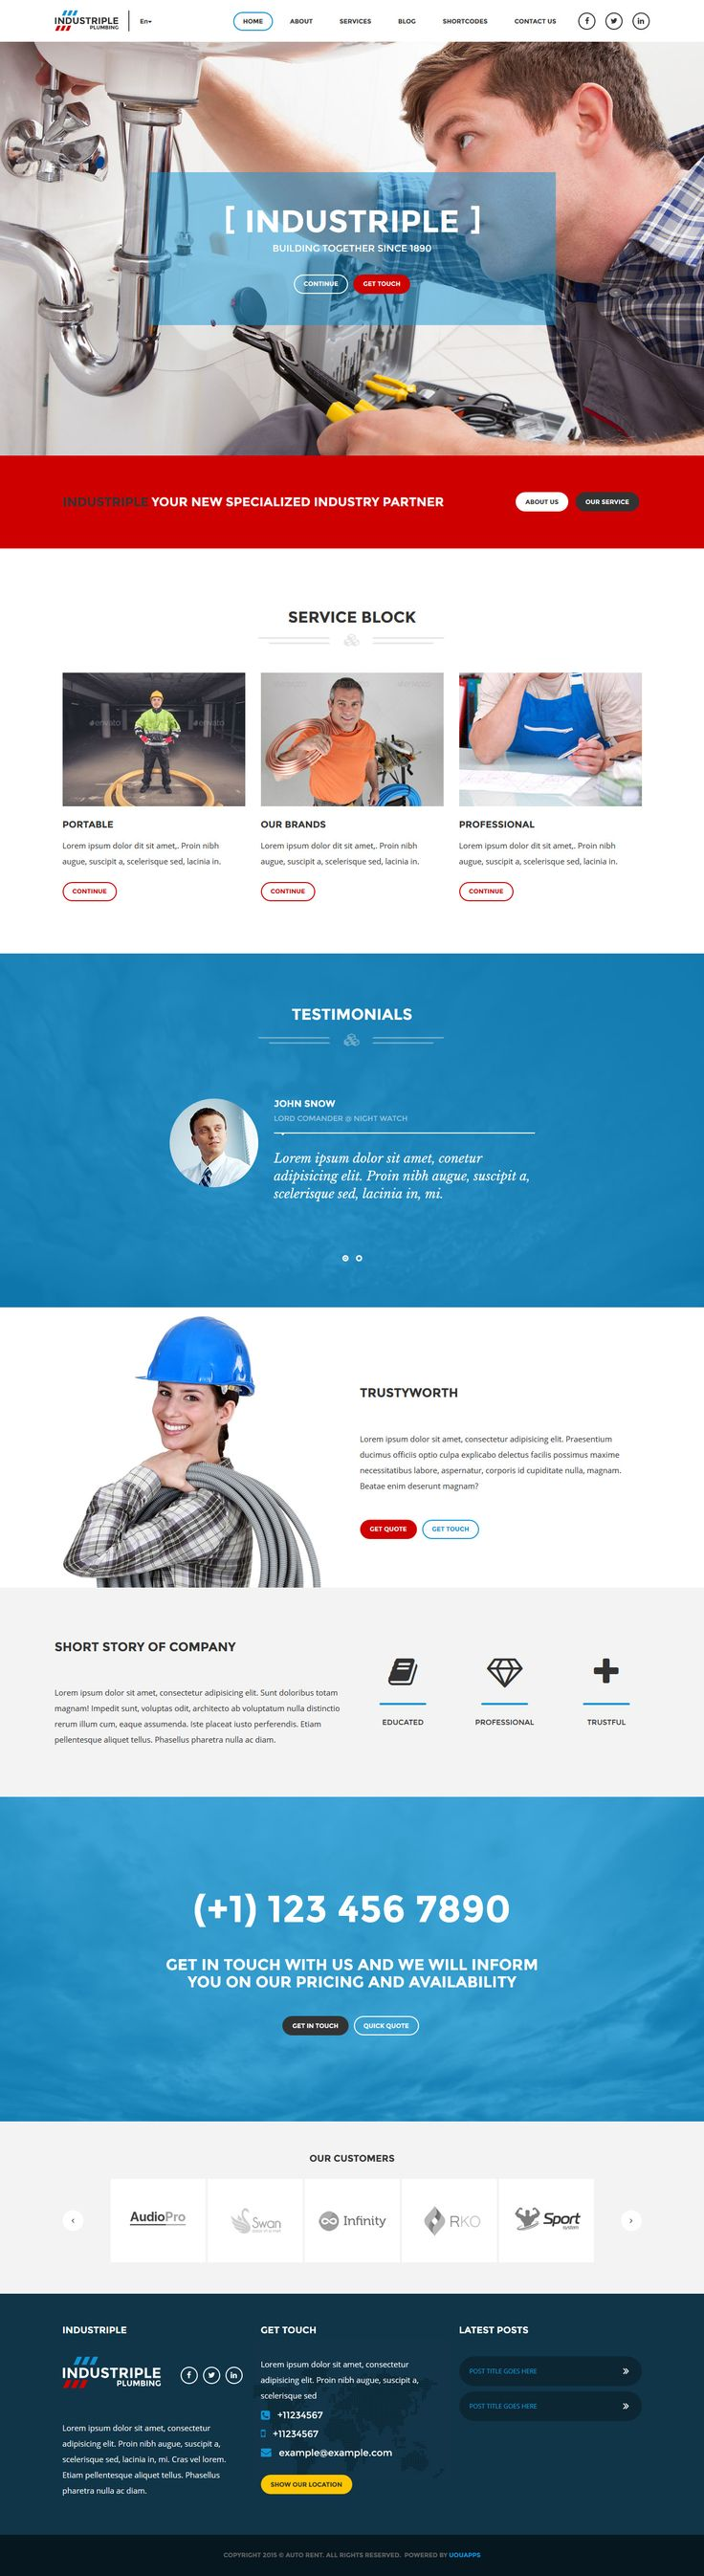 16 best responsive umbraco theme designs images on pinterest